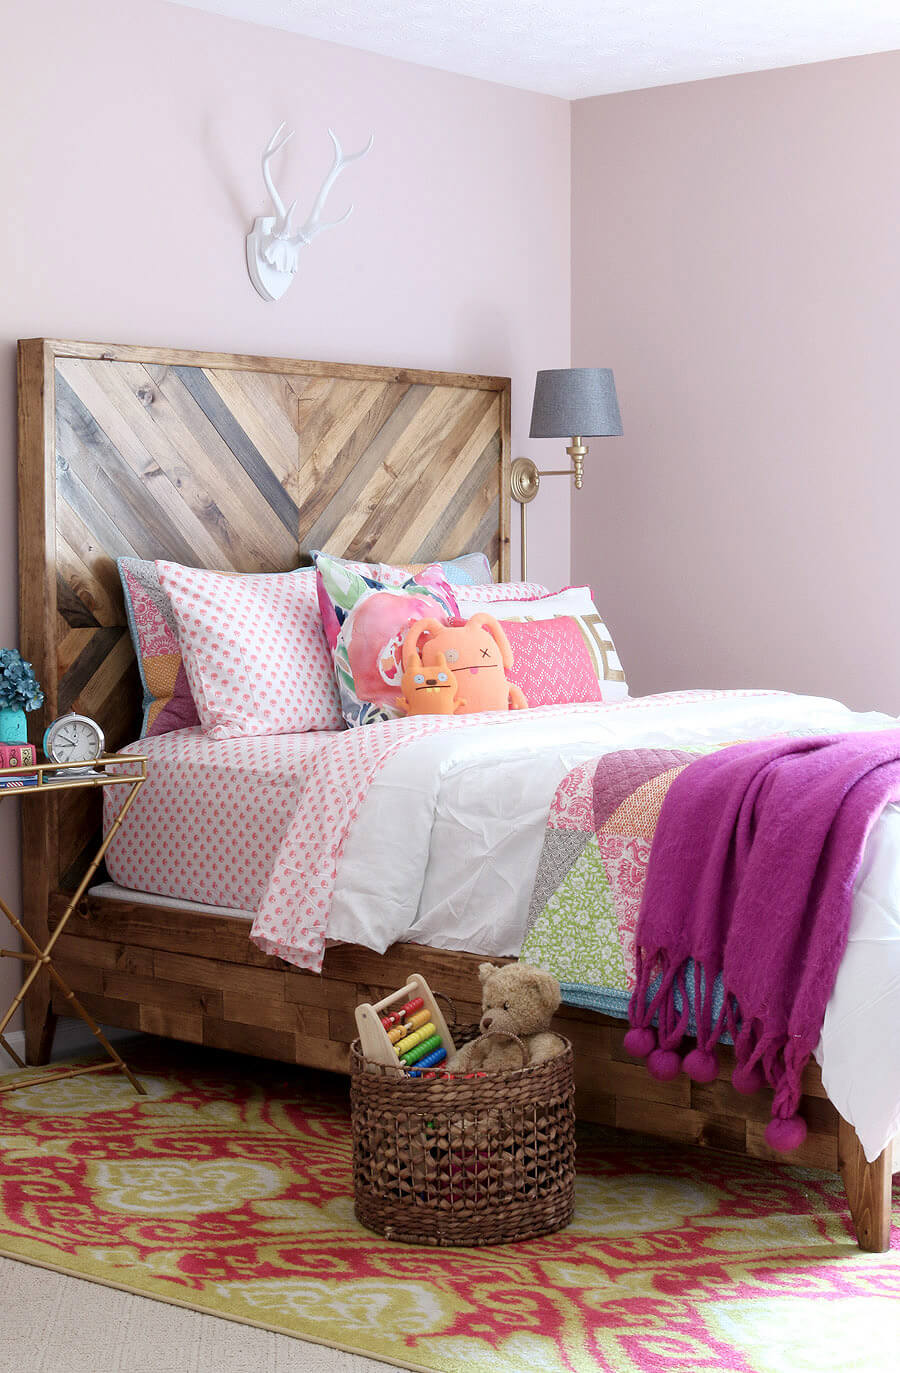 Robust Wooden Chevron Headboard | DIY Headboard Decoration Ideas for Bedroom